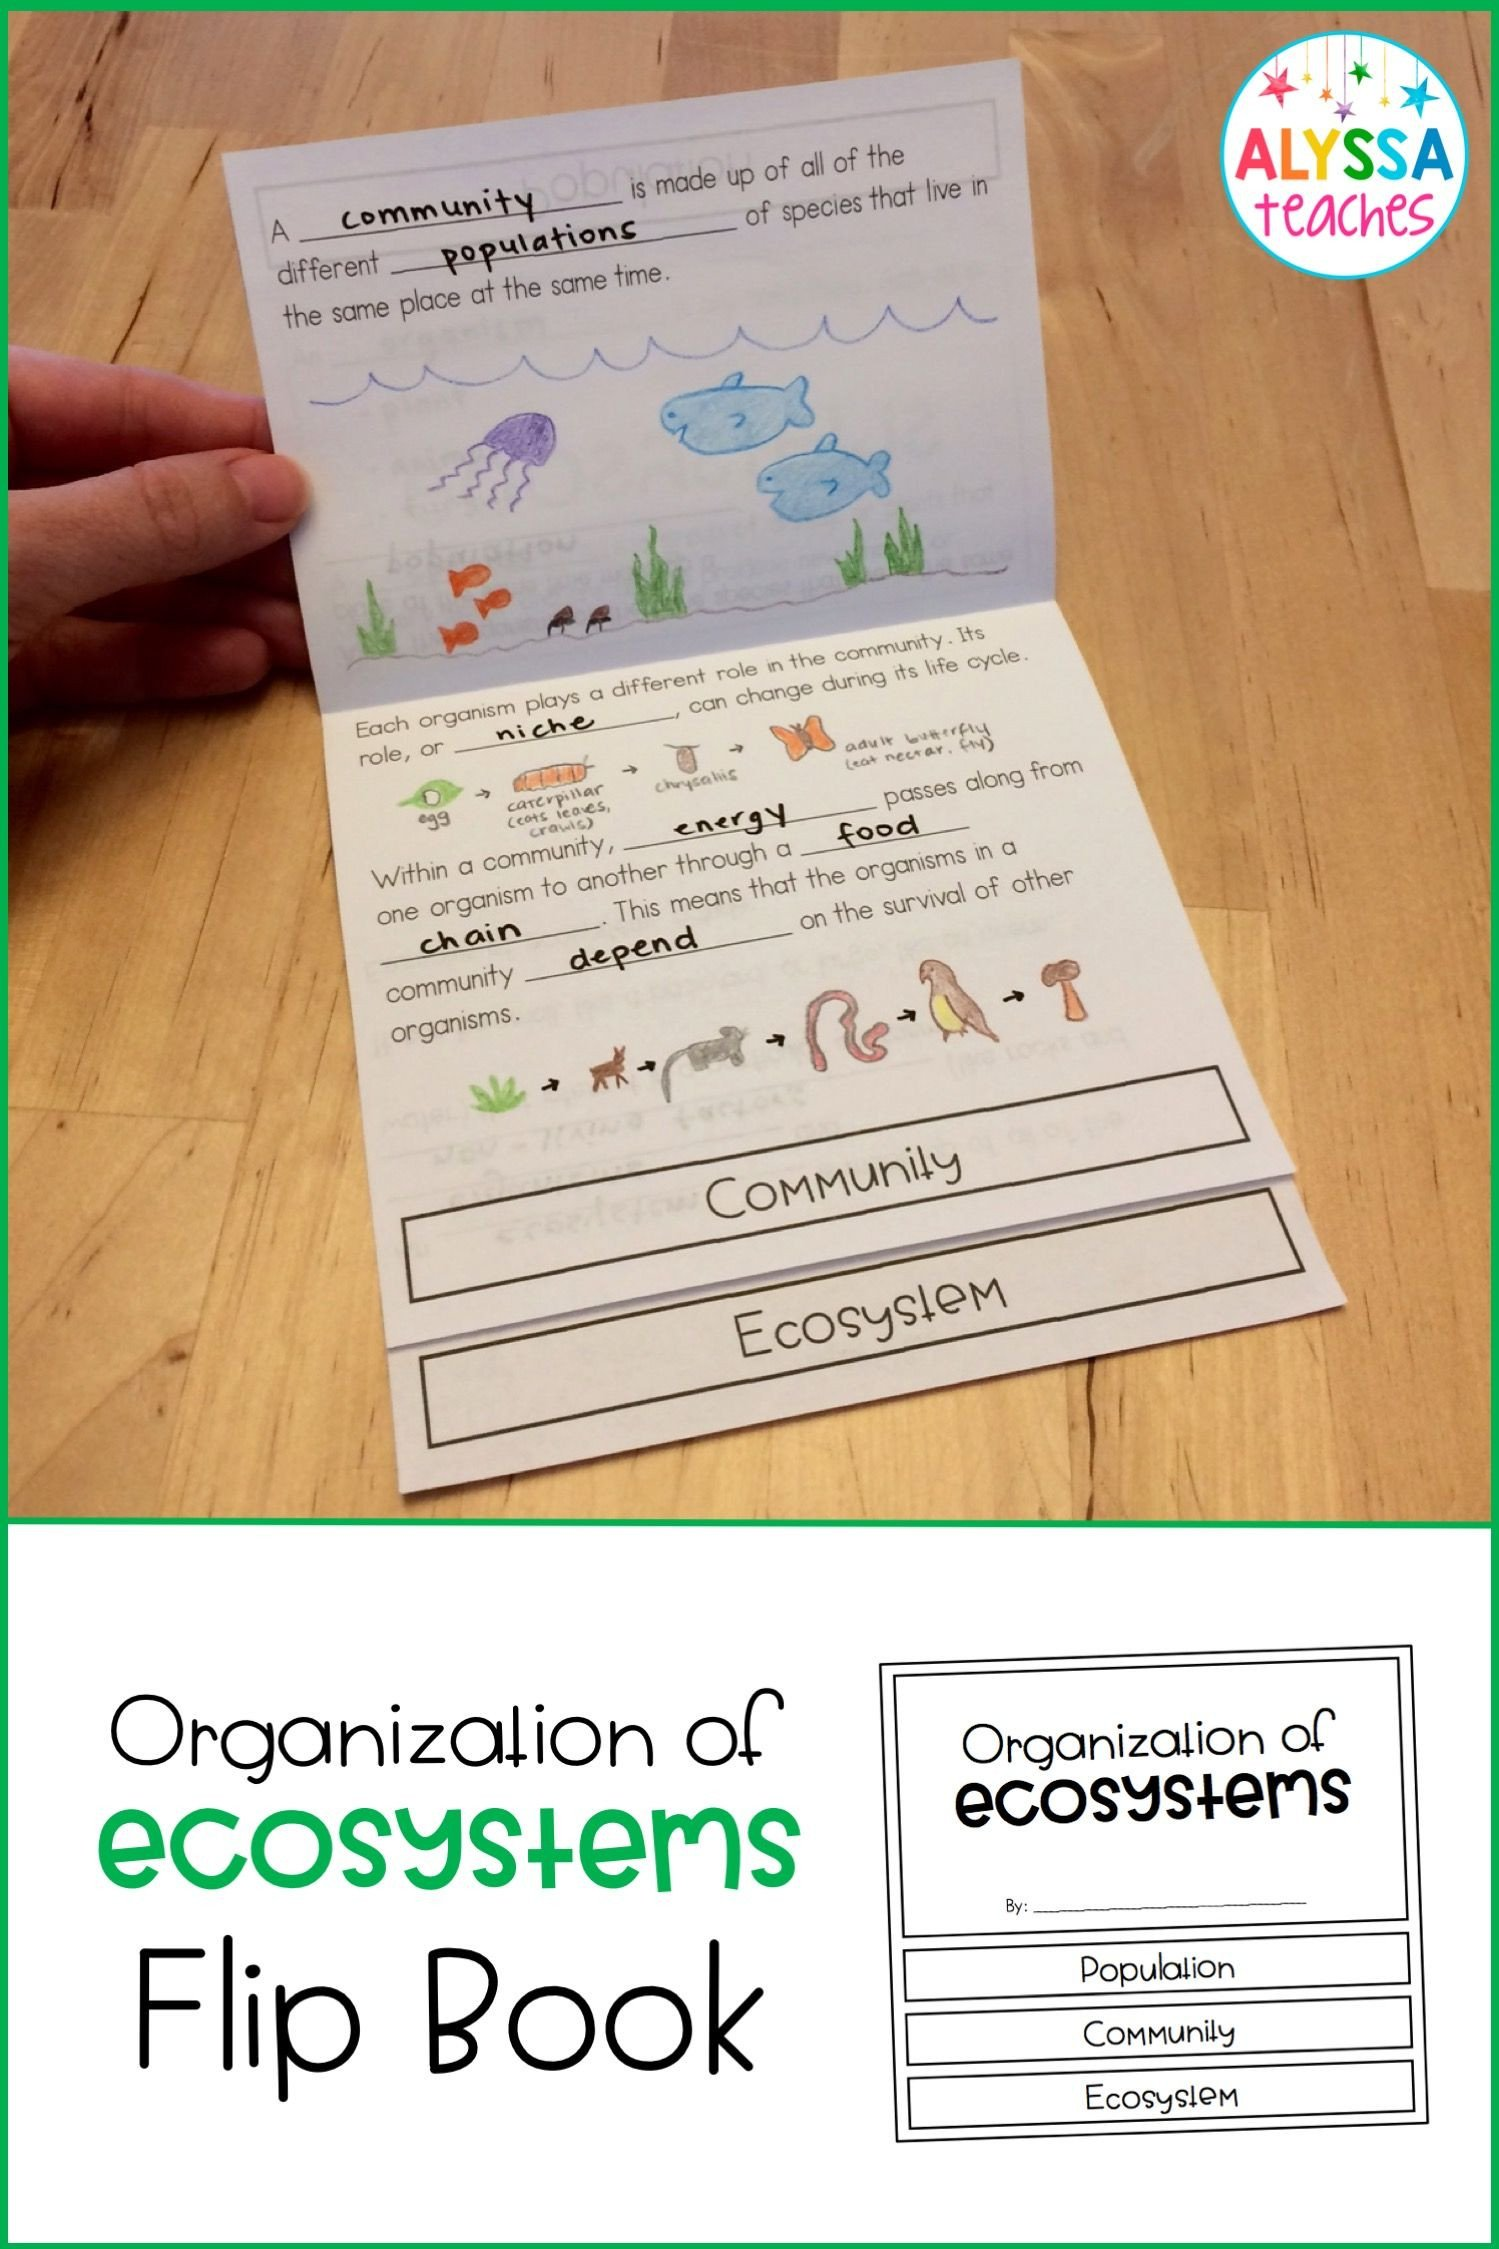 Ecosystem Worksheets 4th Grade Plant and Animal Adaptations Flip Book